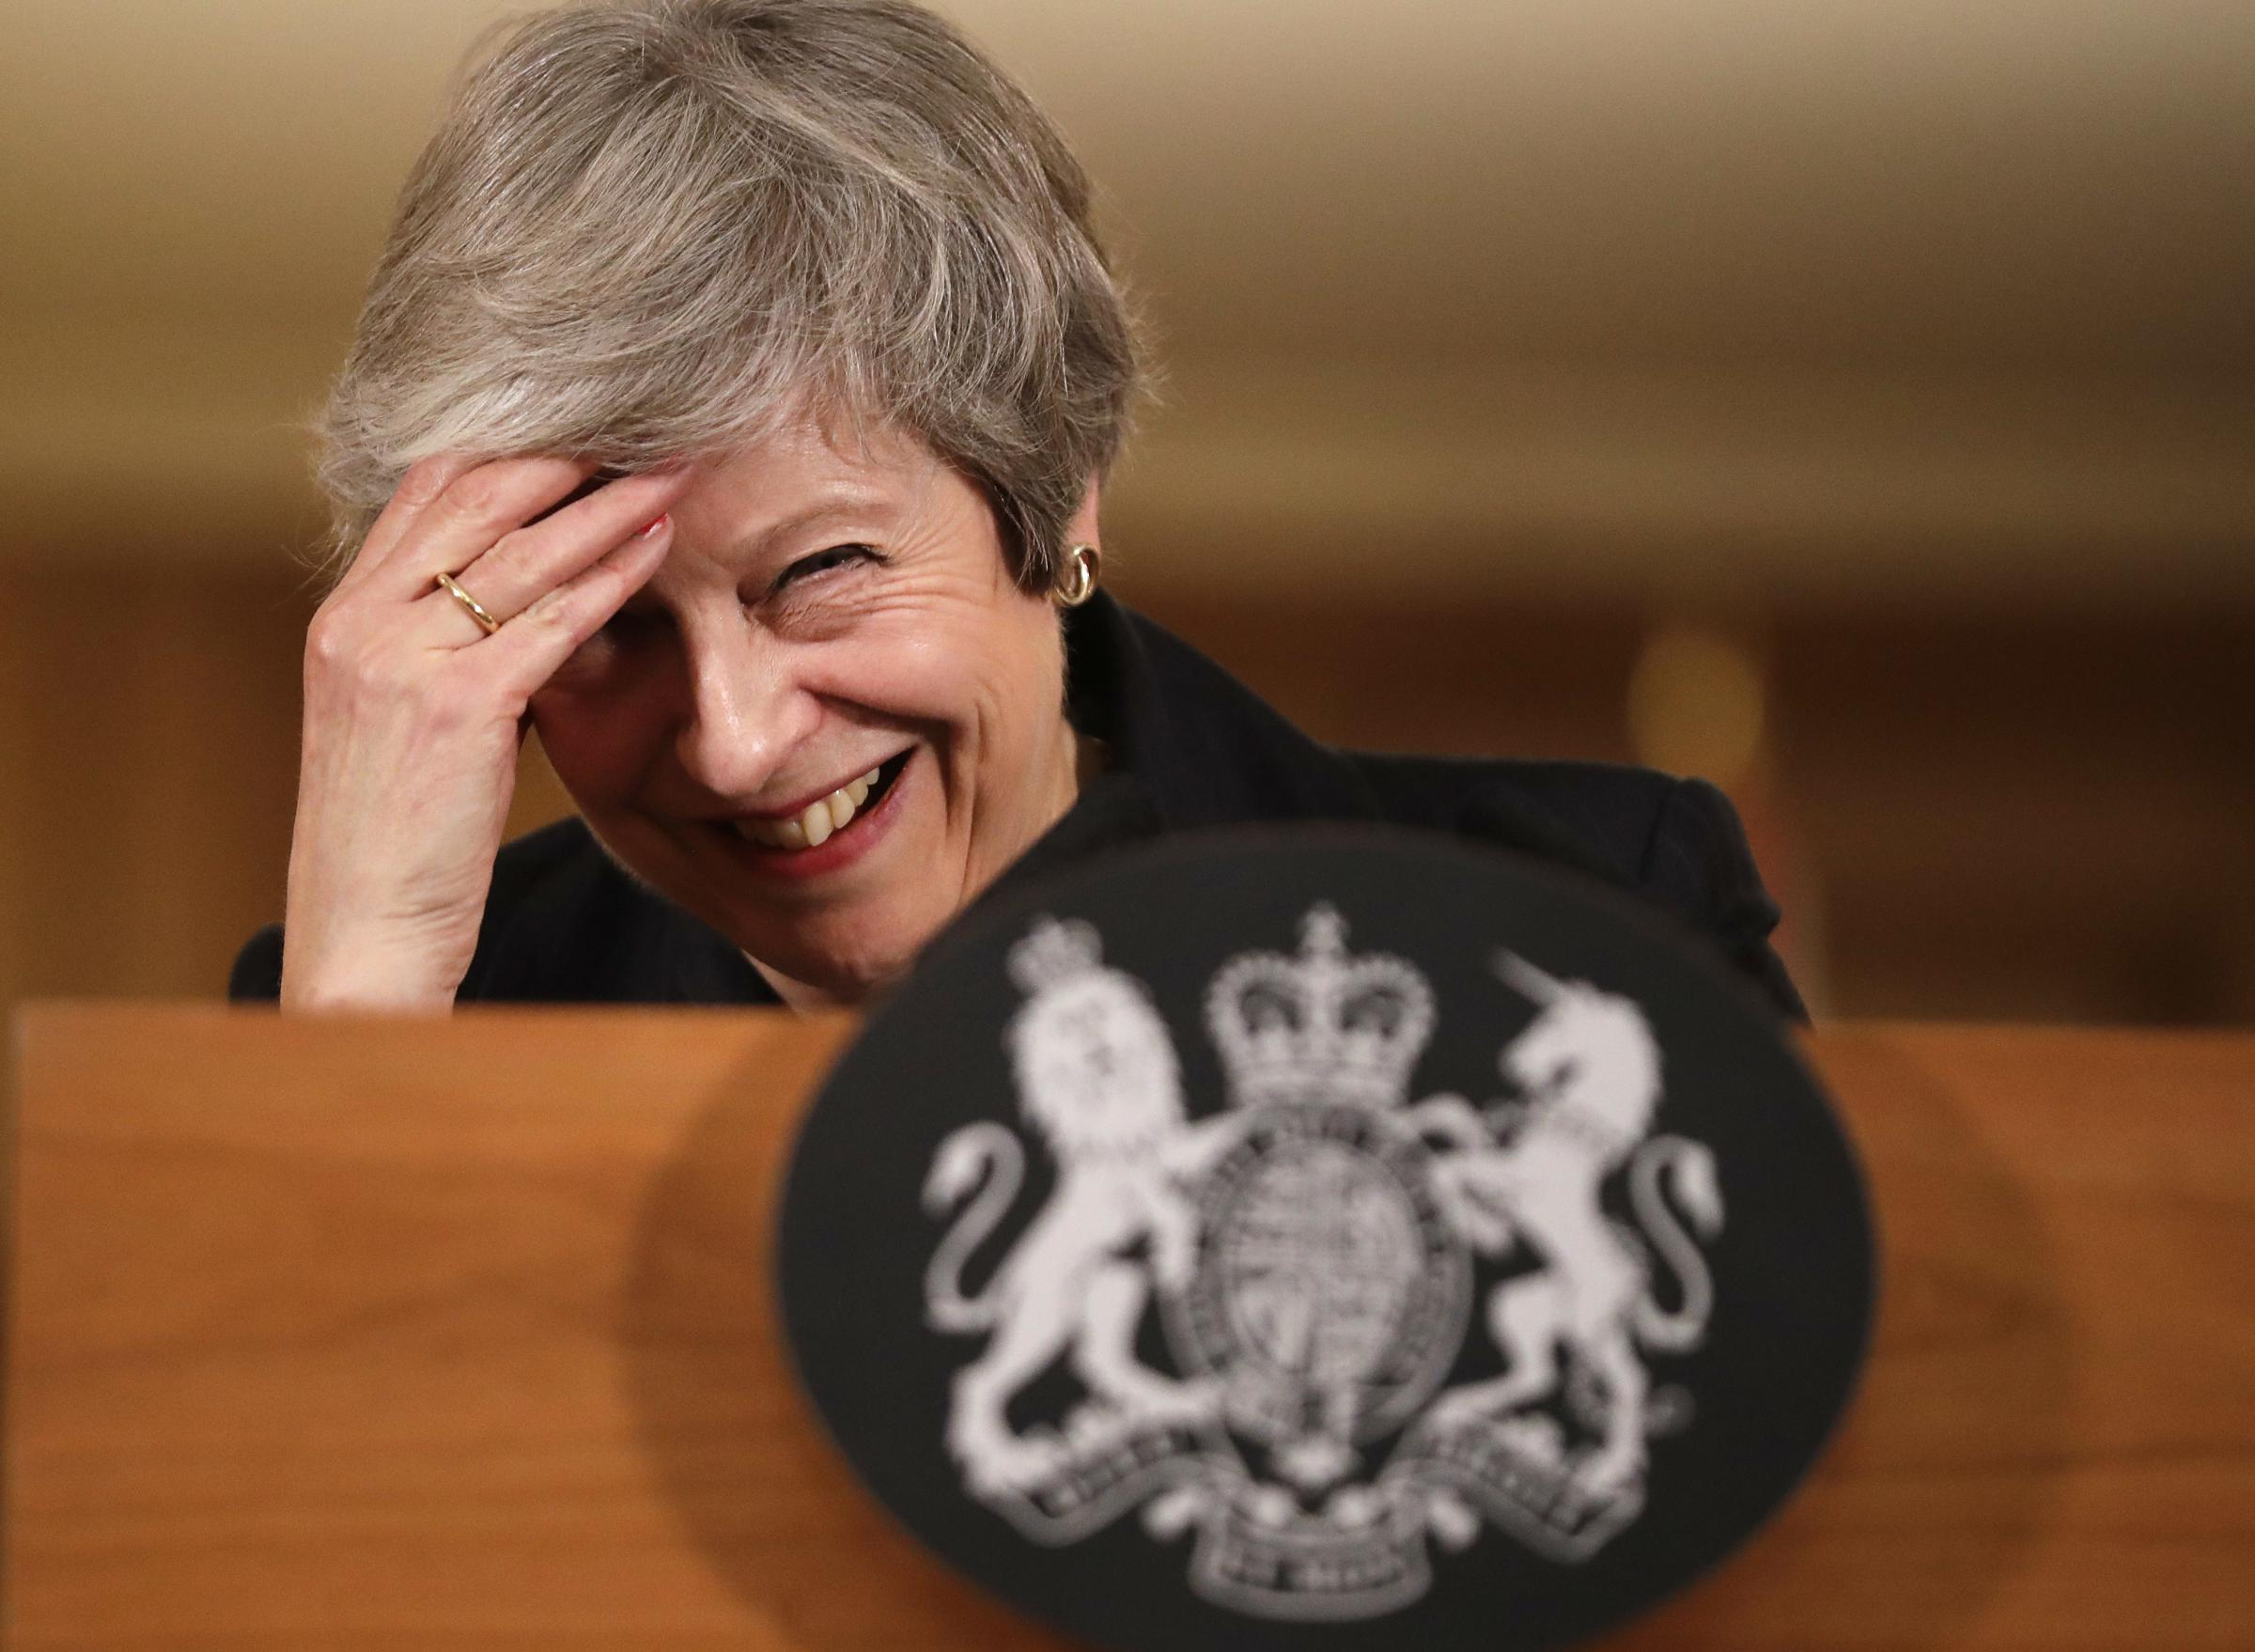 Prime Minister Theresa May reacts during a press conference at 10 Downing Street, London, to discuss her Brexit plans Picture: PA